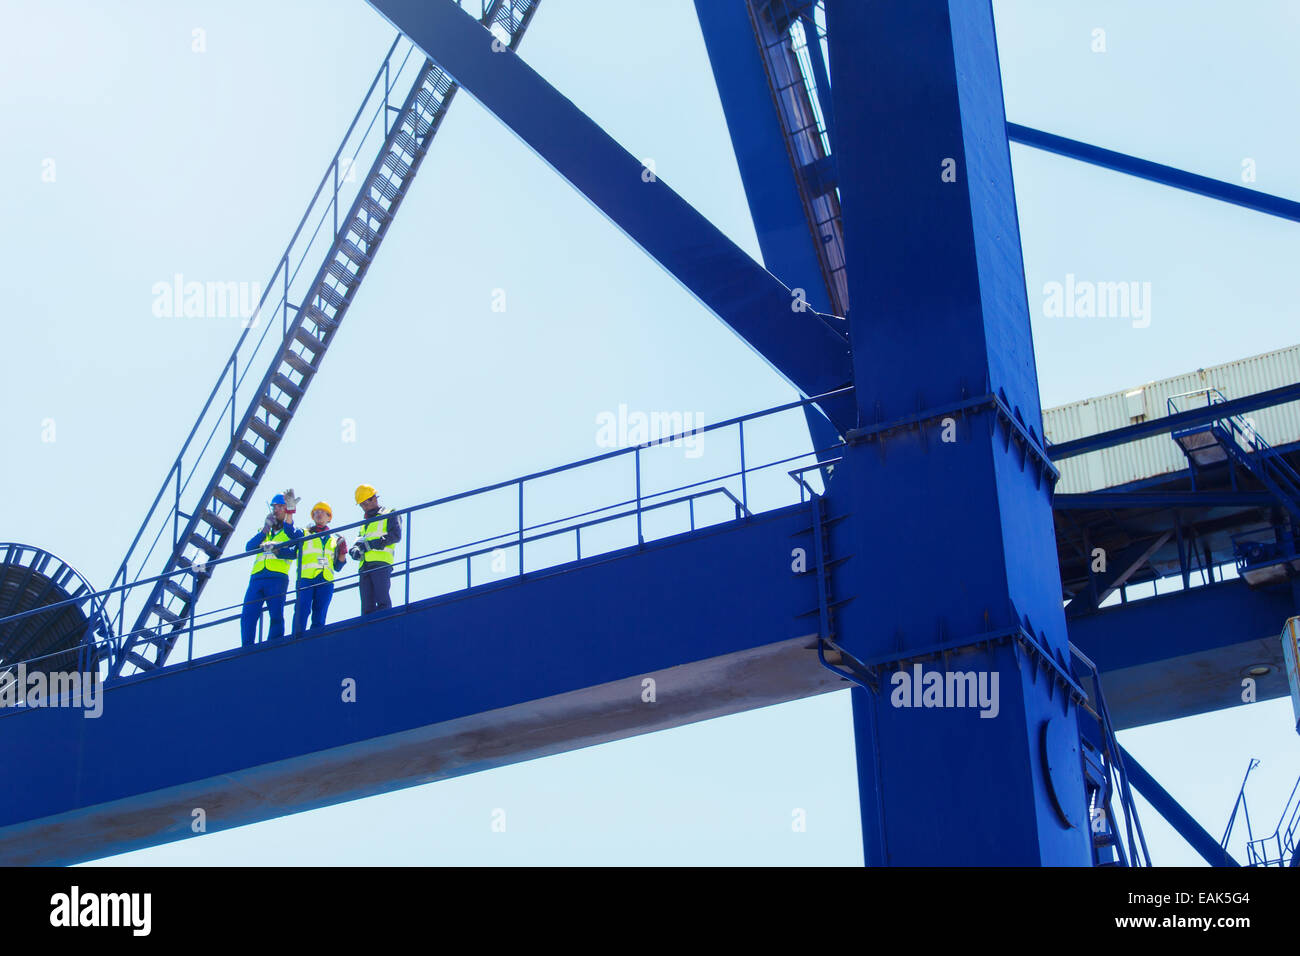 Low angle view of workers on cargo crane - Stock Image